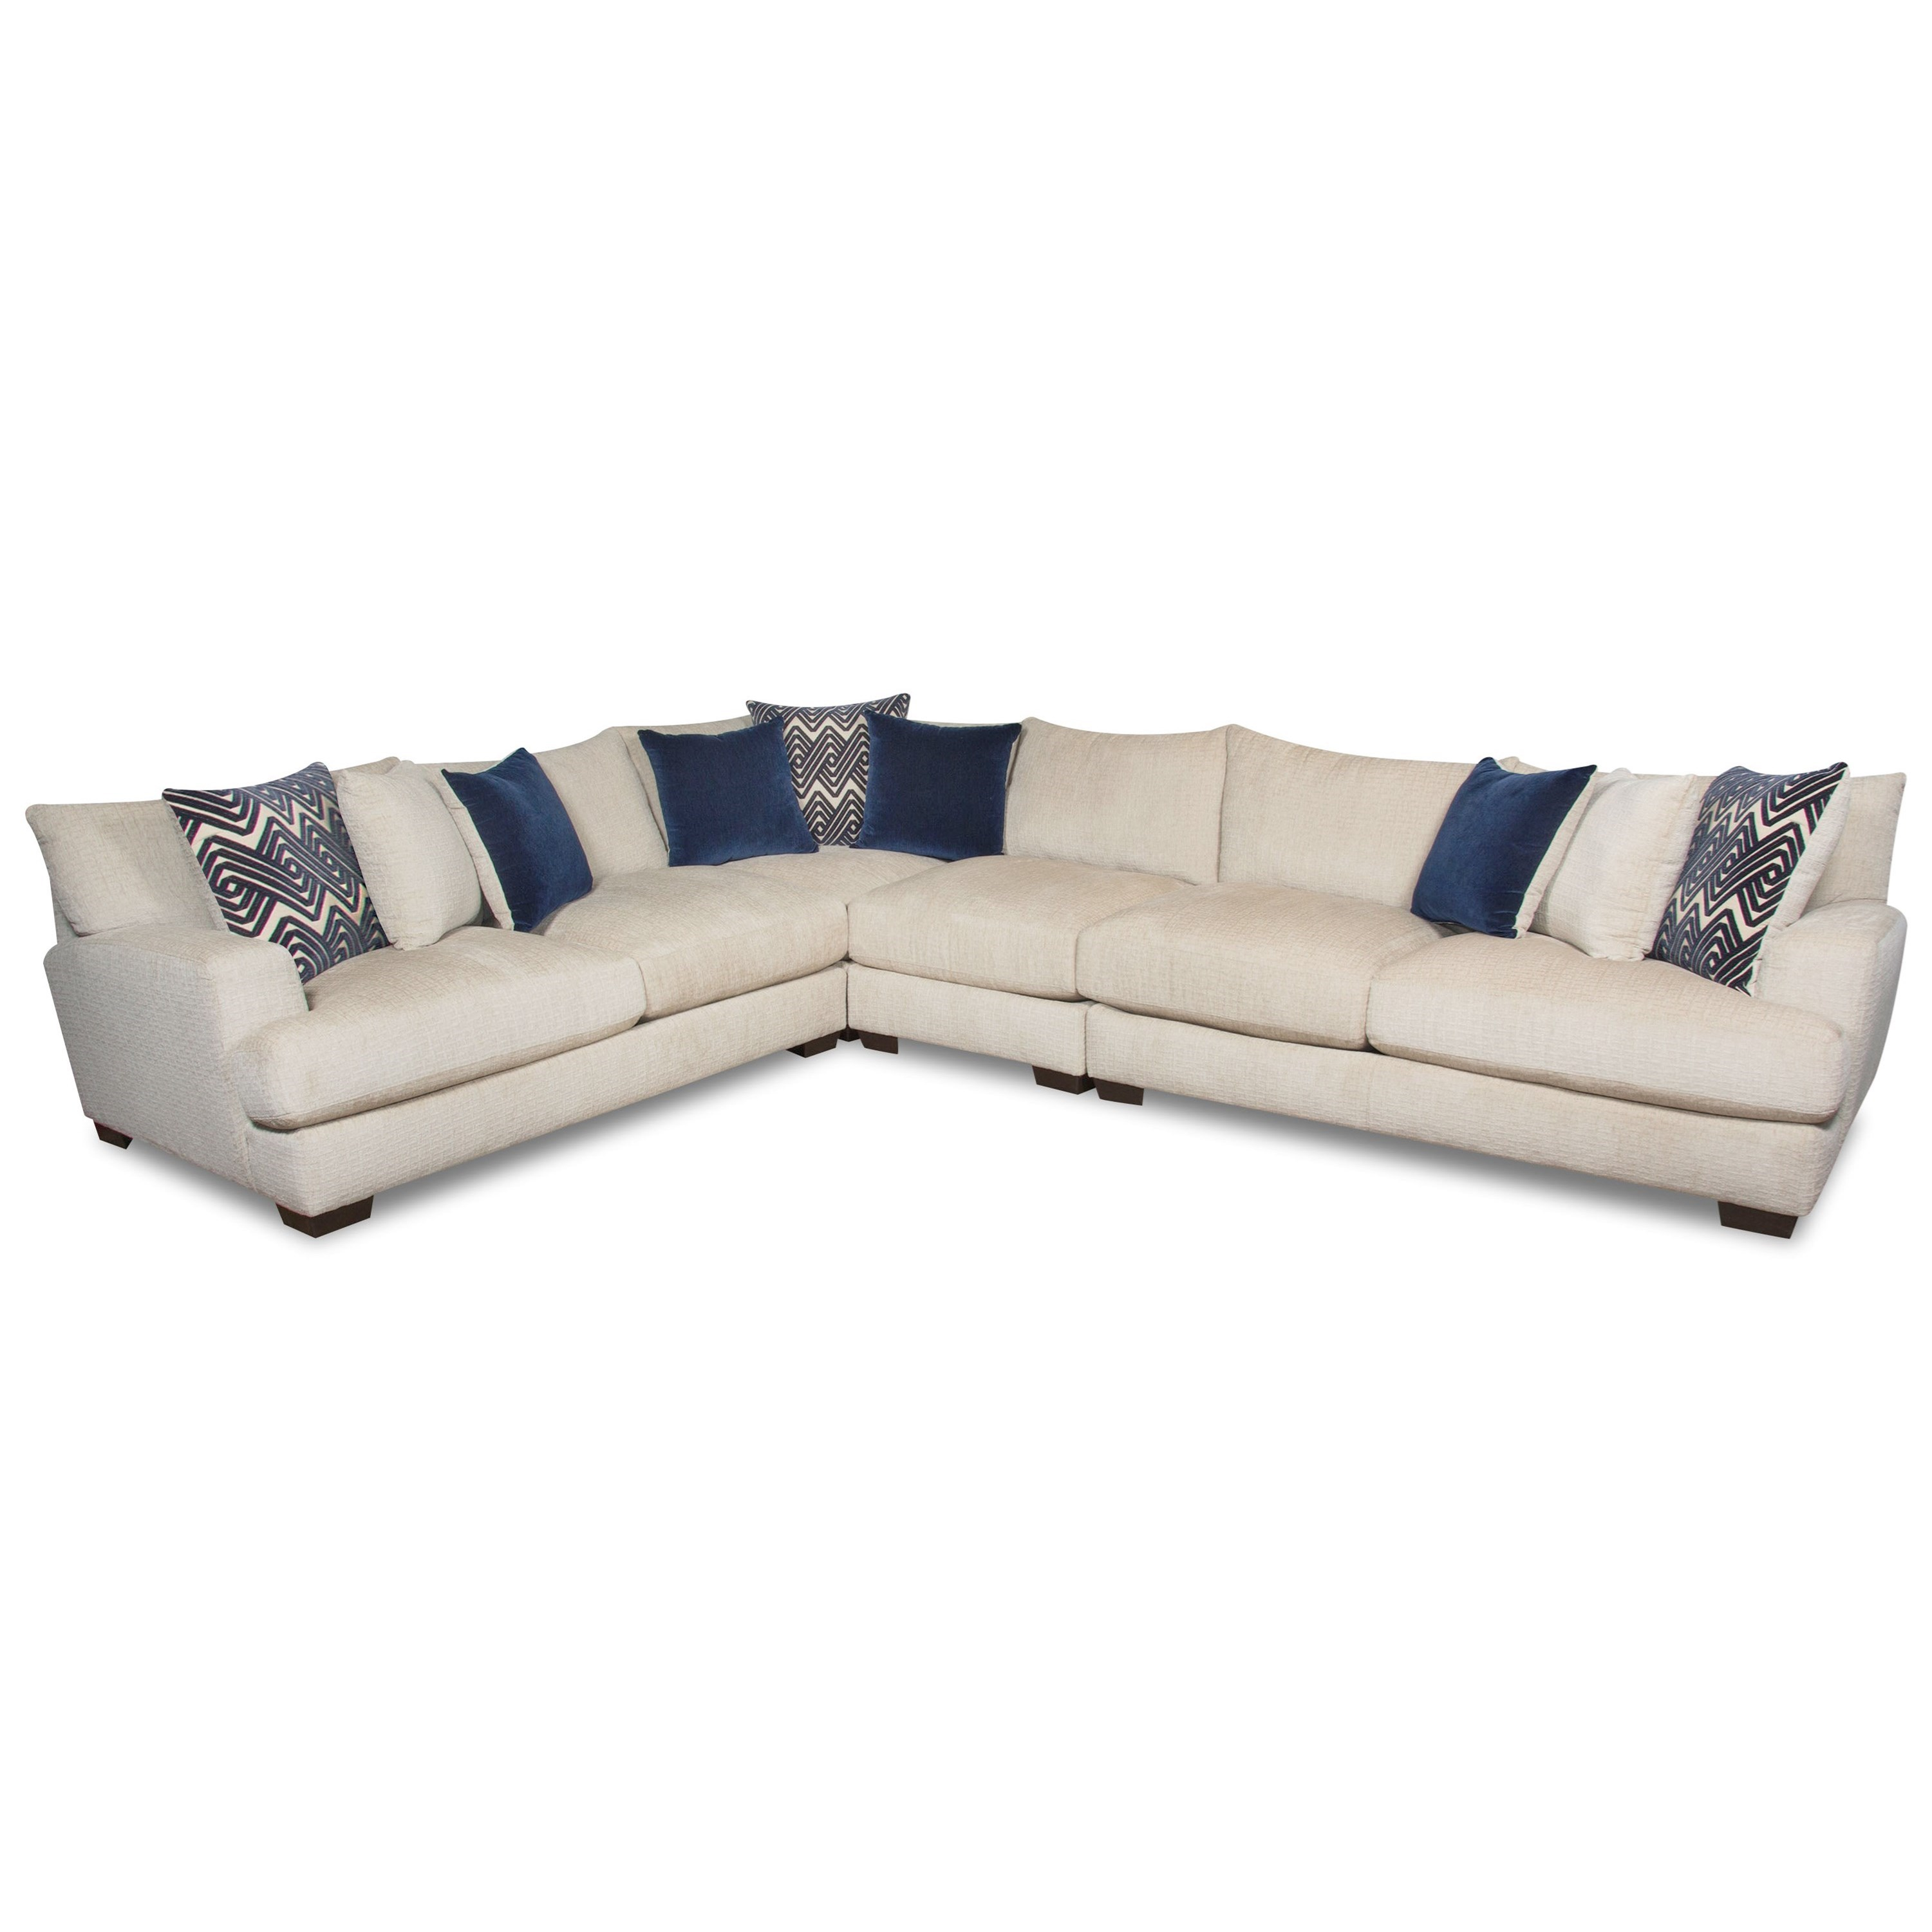 American Furniture 1600 5 Seat Sectional - Item Number: 1610+1611+1604+1640-5440